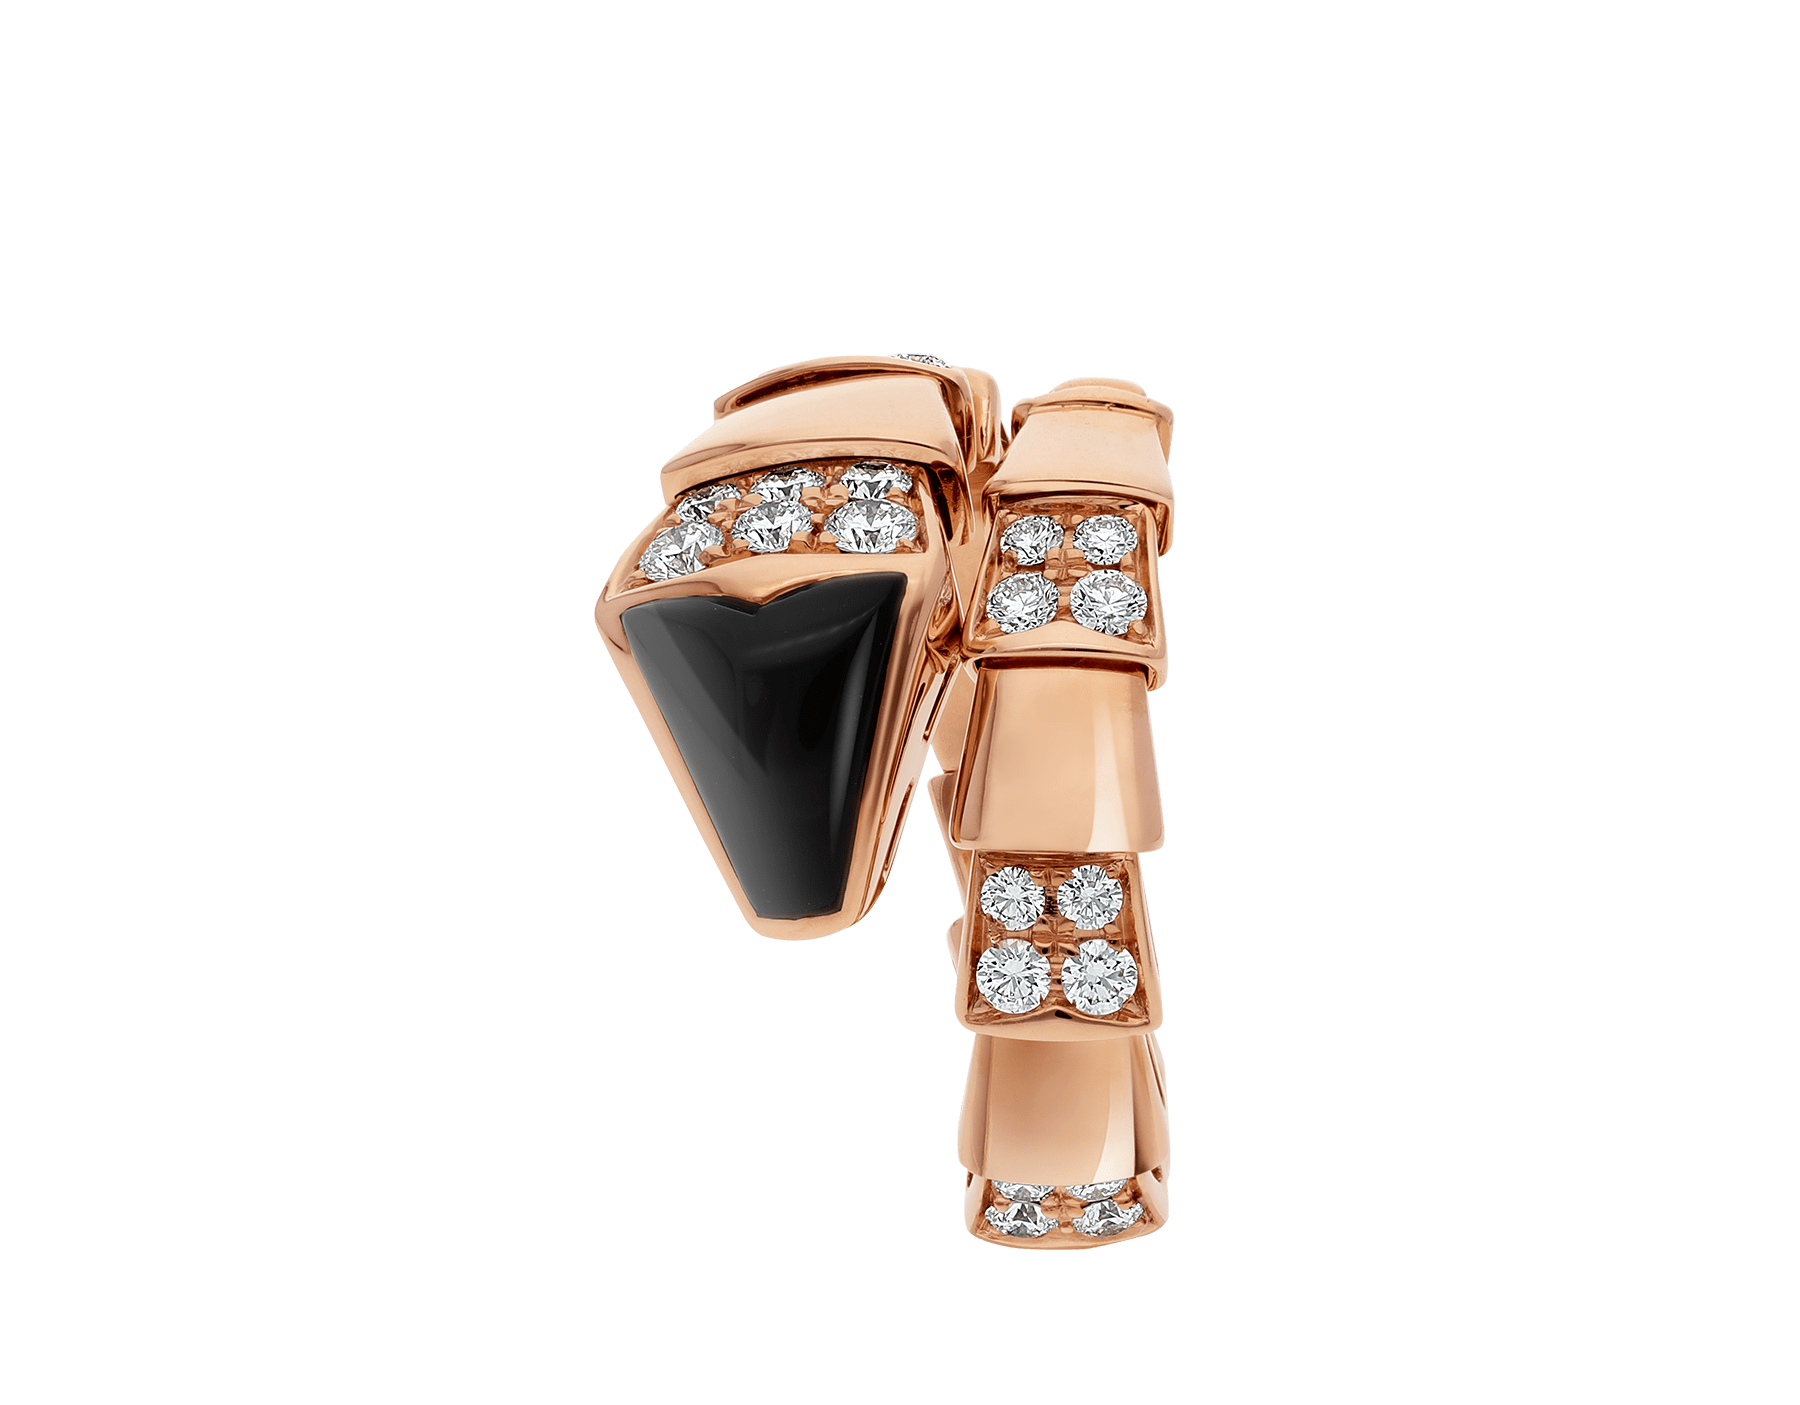 Serpenti one-coil ring in 18 kt rose gold, set with black onyx elements and demi pavé diamonds. AN855315 image 2